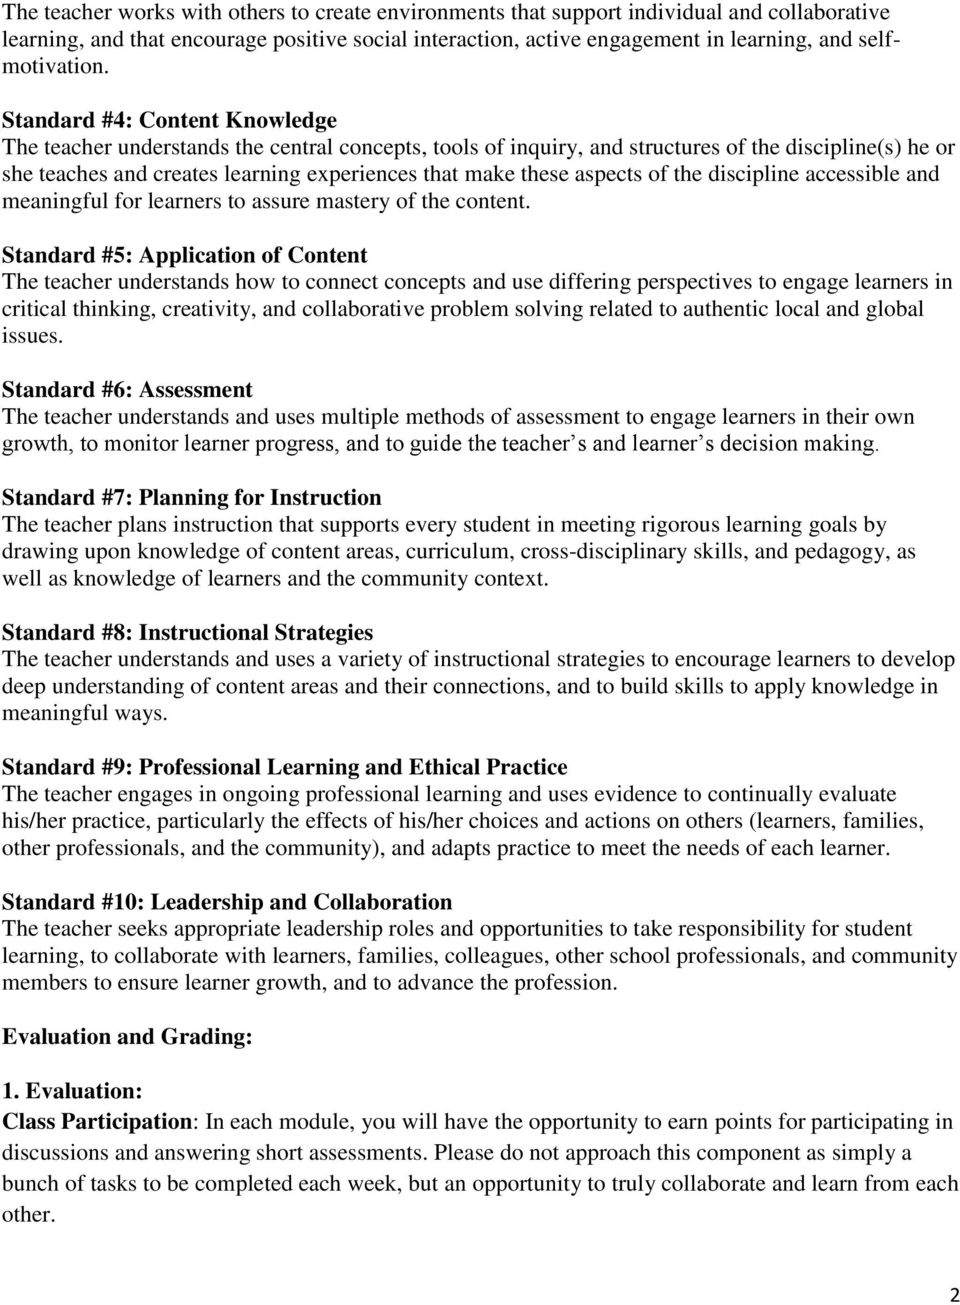 Standard #4: Content Knowledge The teacher understands the central concepts, tools of inquiry, and structures of the discipline(s) he or she teaches and creates learning experiences that make these